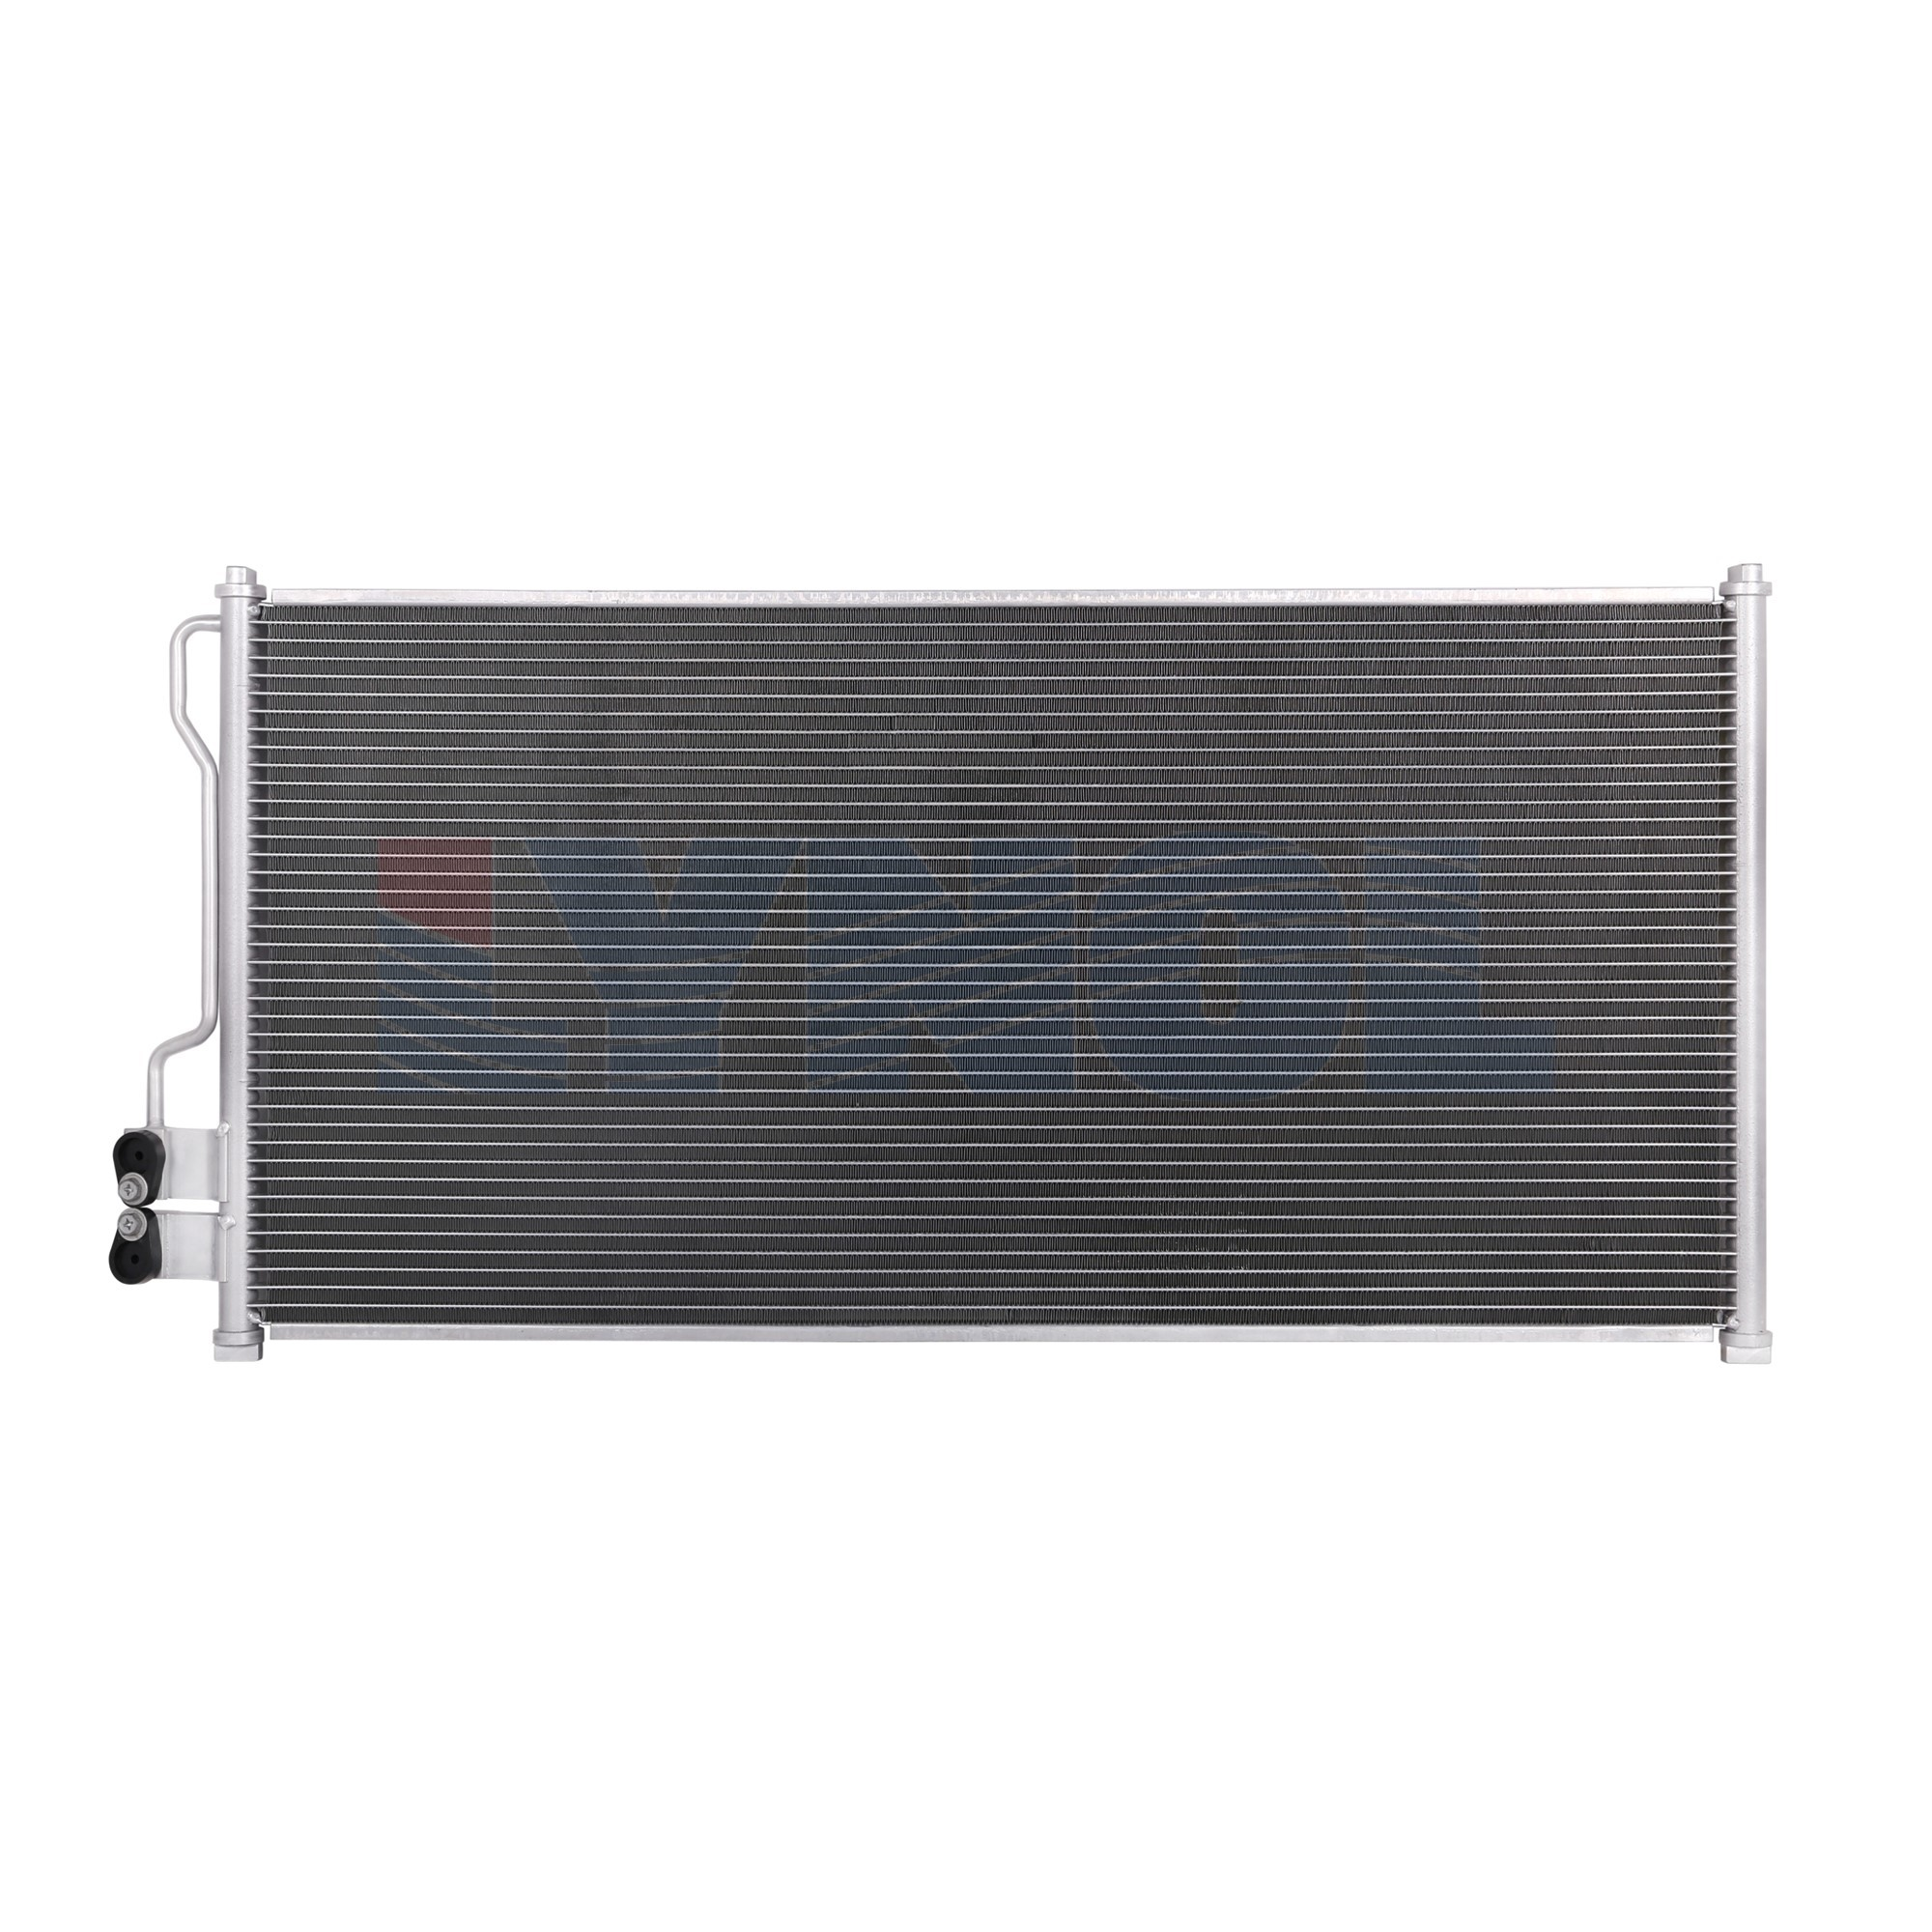 AC4879 - AC Condensers  - 97-06 Ford Expedition, Lincoln Blackwood, Lincoln Navigator